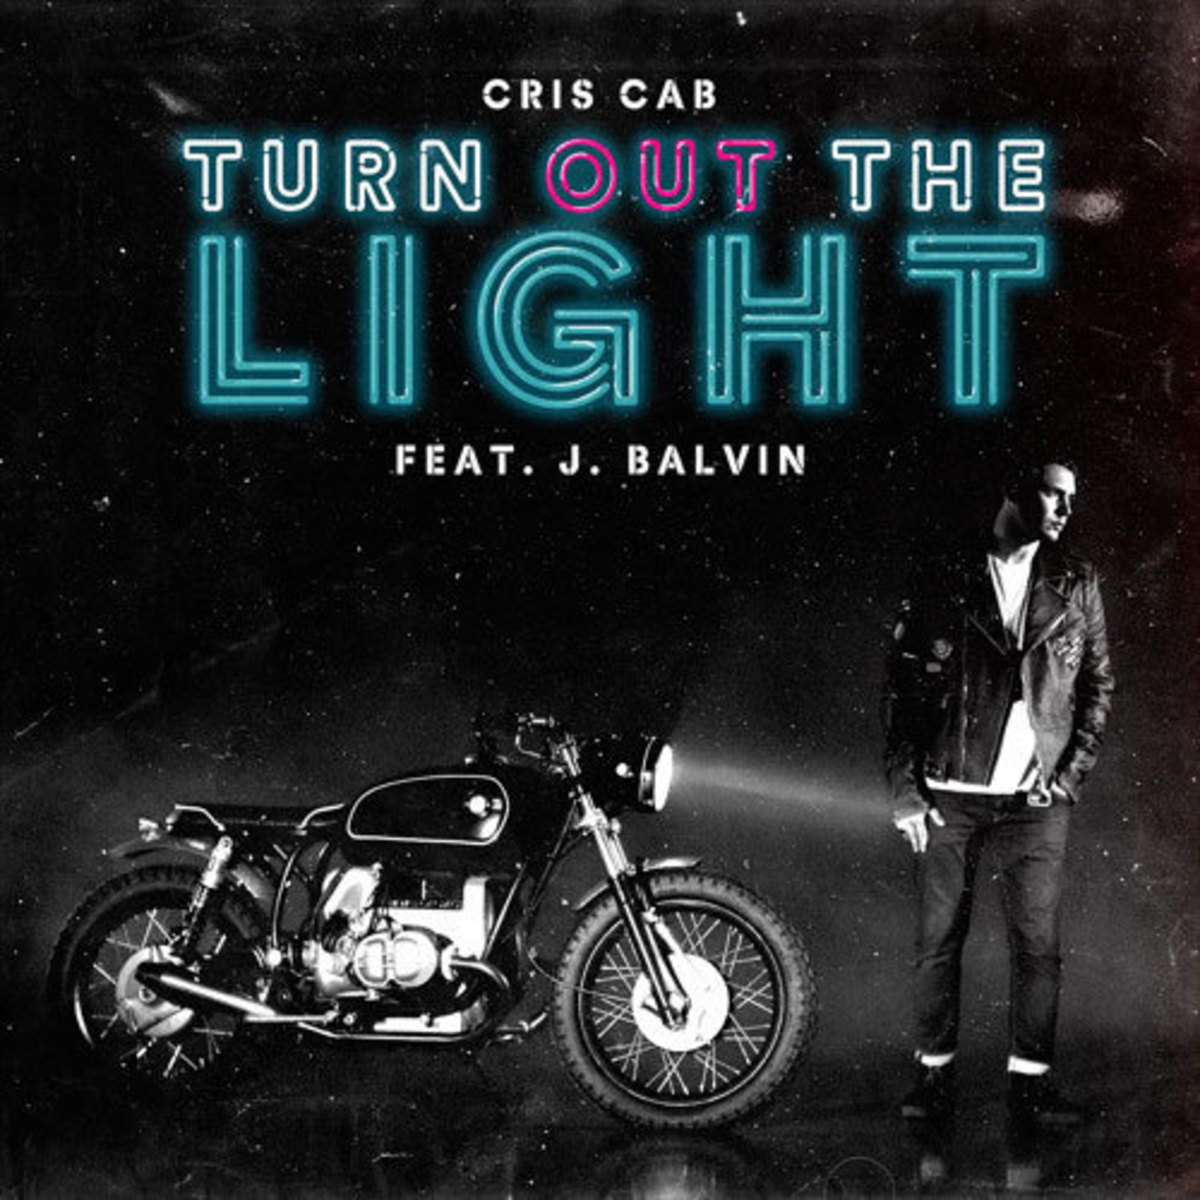 cris-cab-turn-out-the-lights.jpg